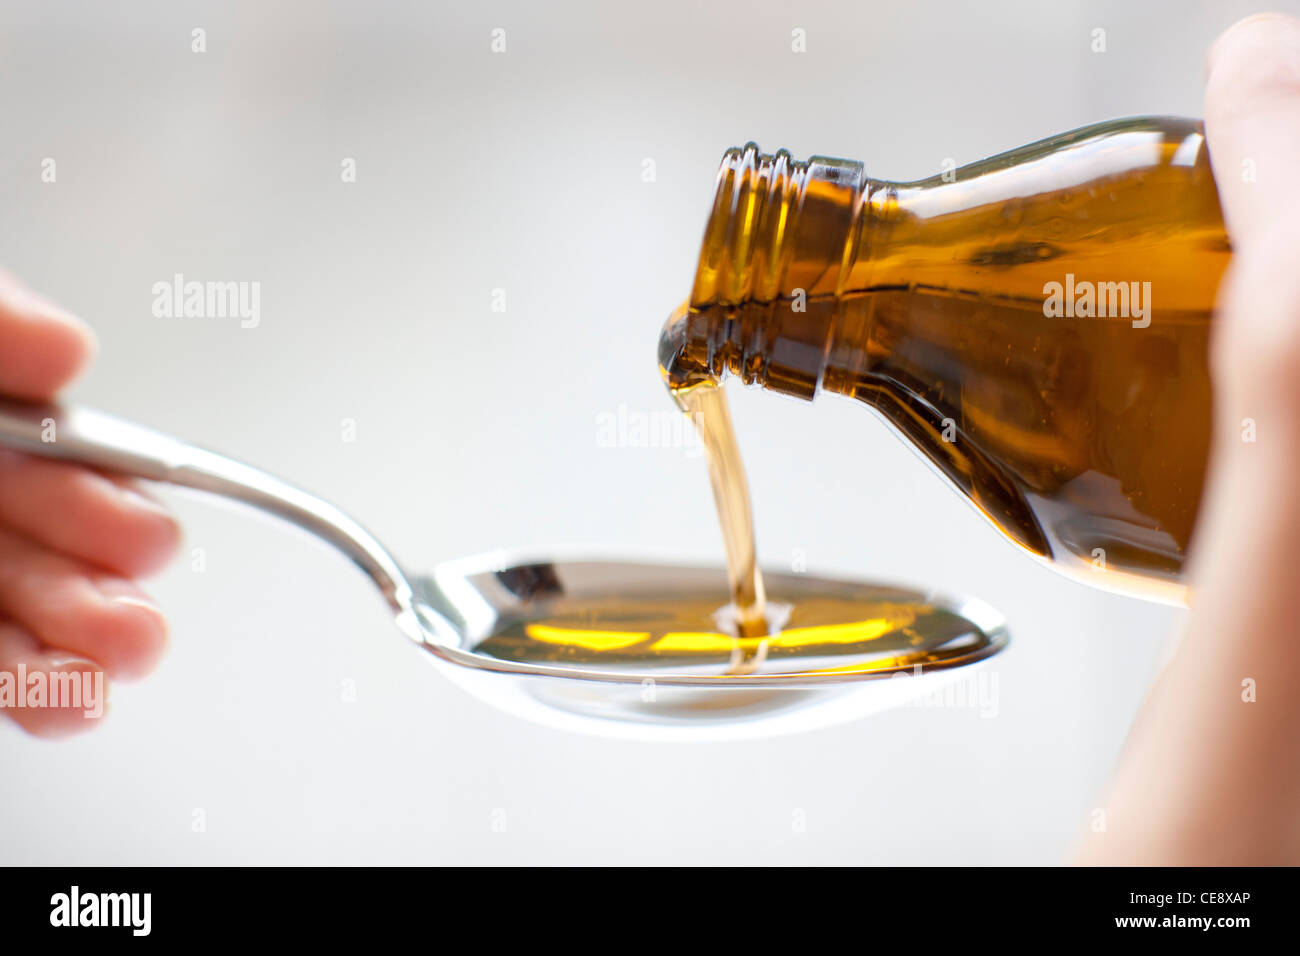 MODEL RELEASED. Pouring medicine. - Stock Image